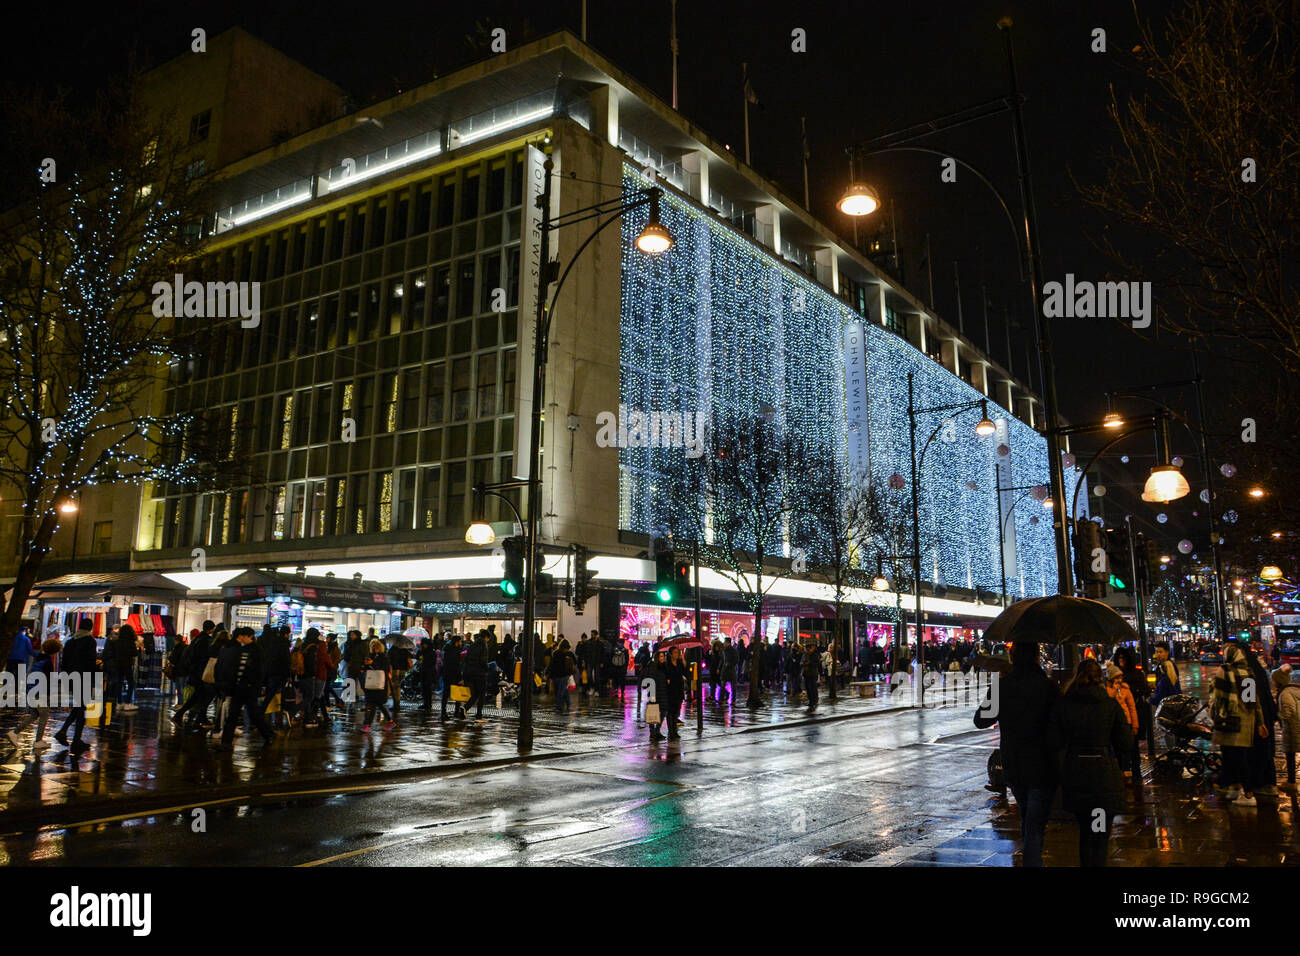 London England Uk 23rd Dec 2018 Londoners Out Shopping For Last